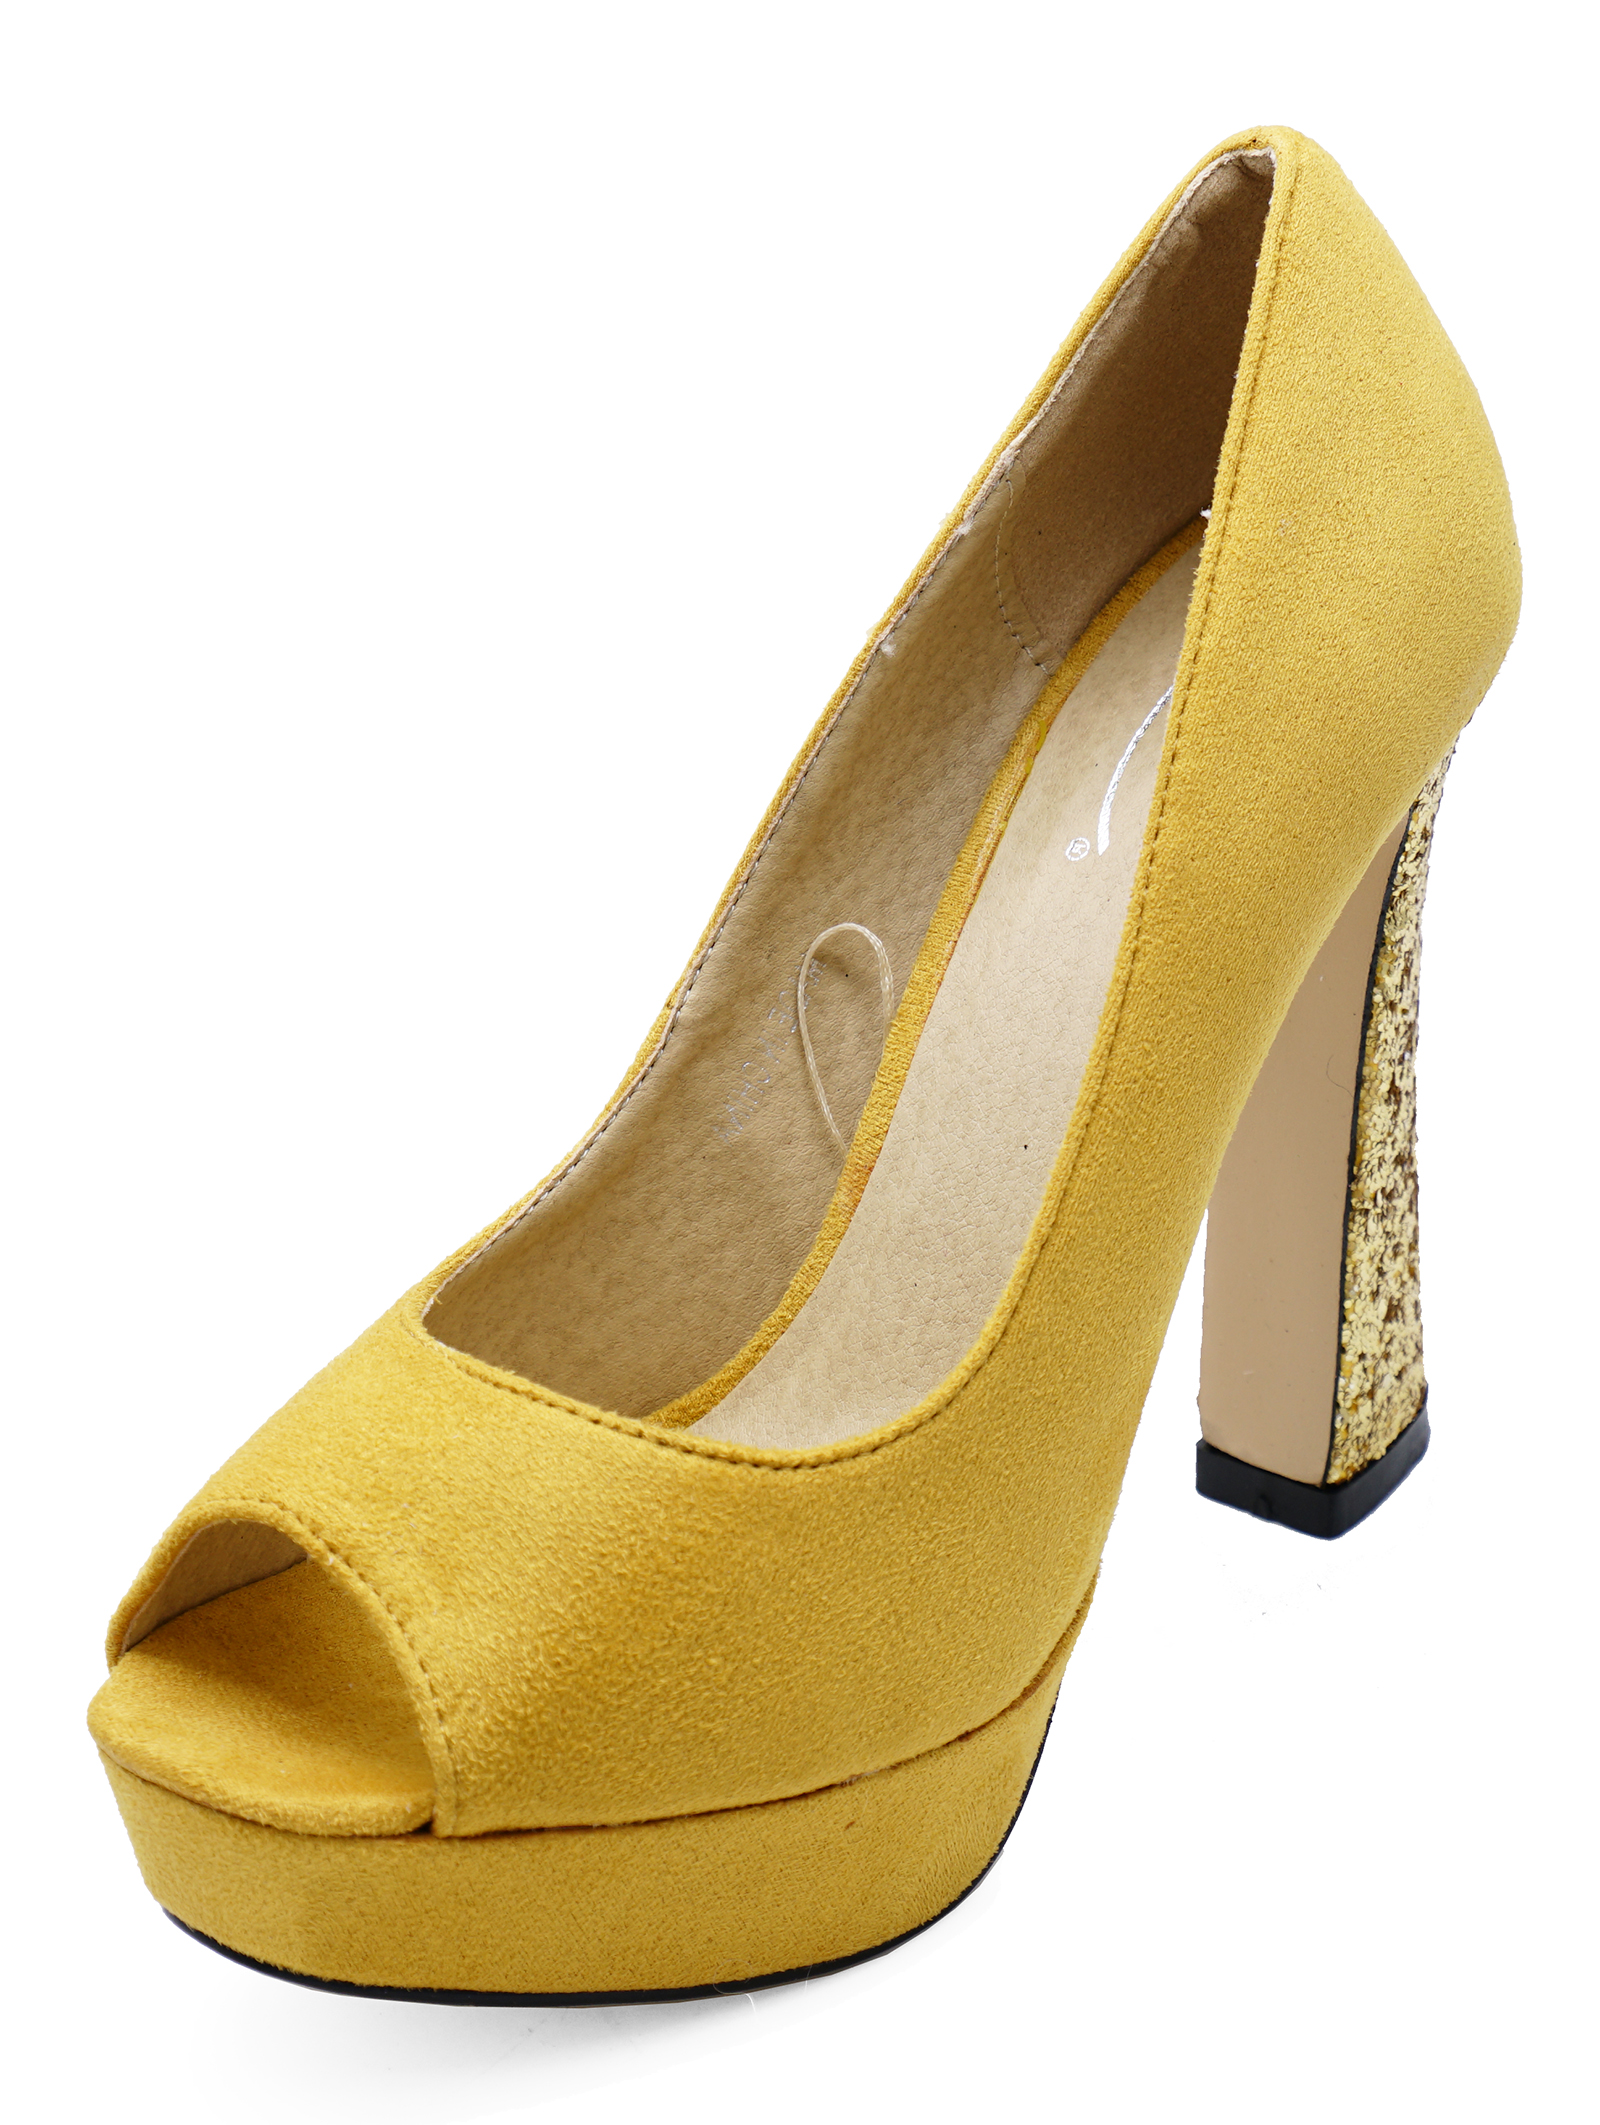 Sentinel LADIES YELLOW SLIP-ON PEEP-TOE COURT PLATFORM SMART HIGH-HEEL PROM  SHOES 1d6200e70d